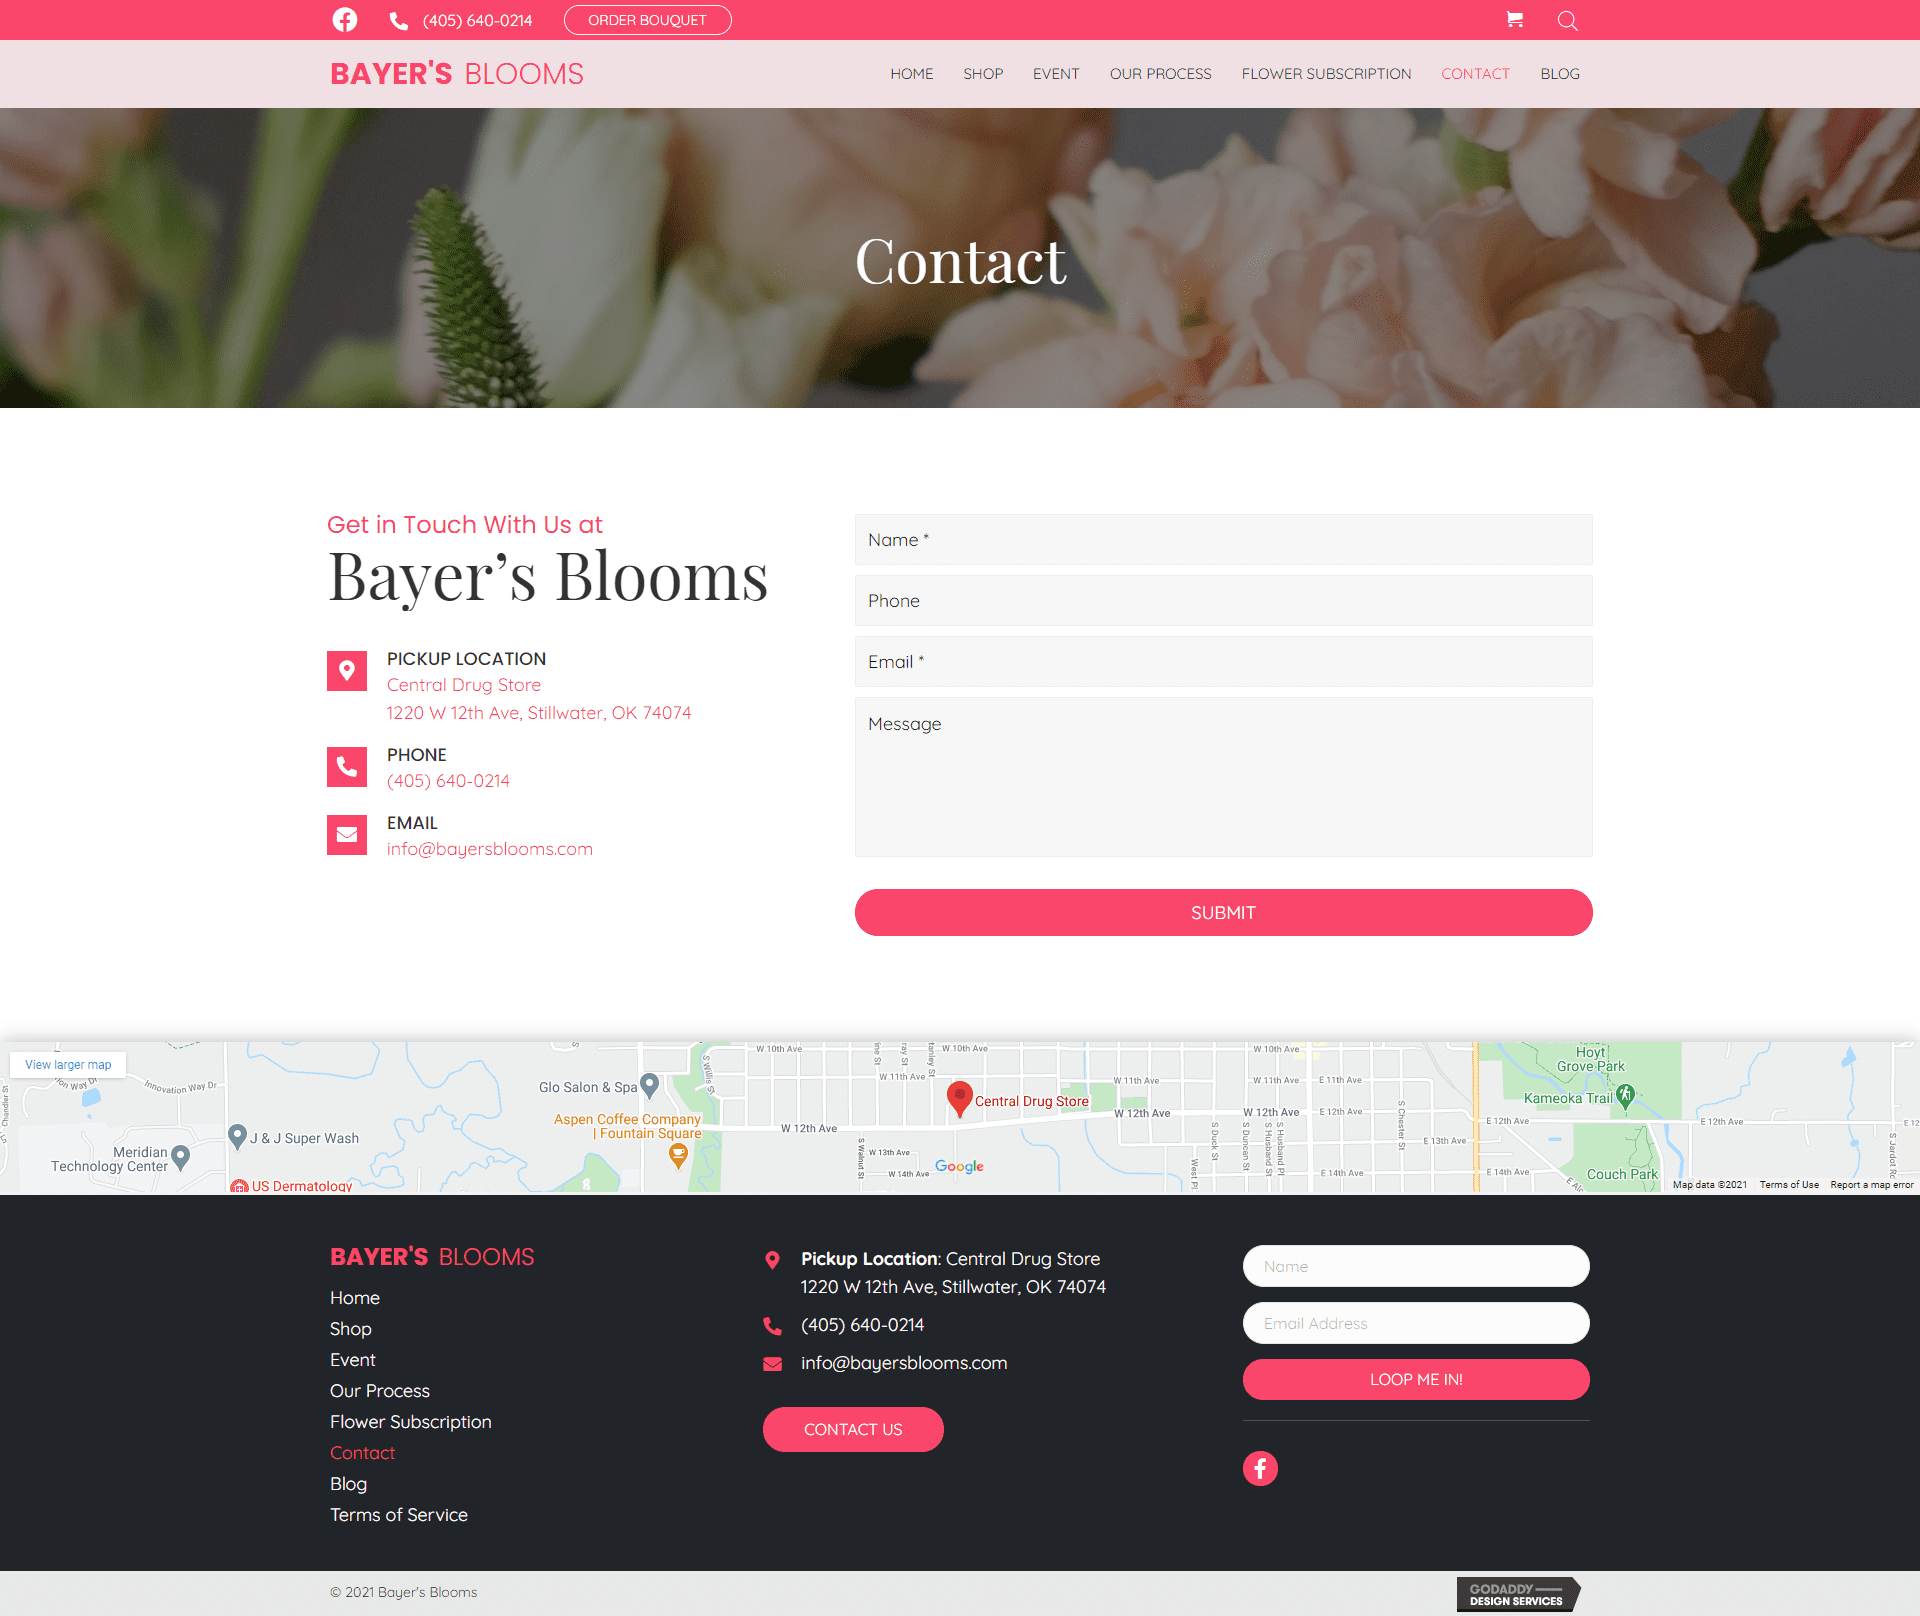 Bayer's Blooms contact